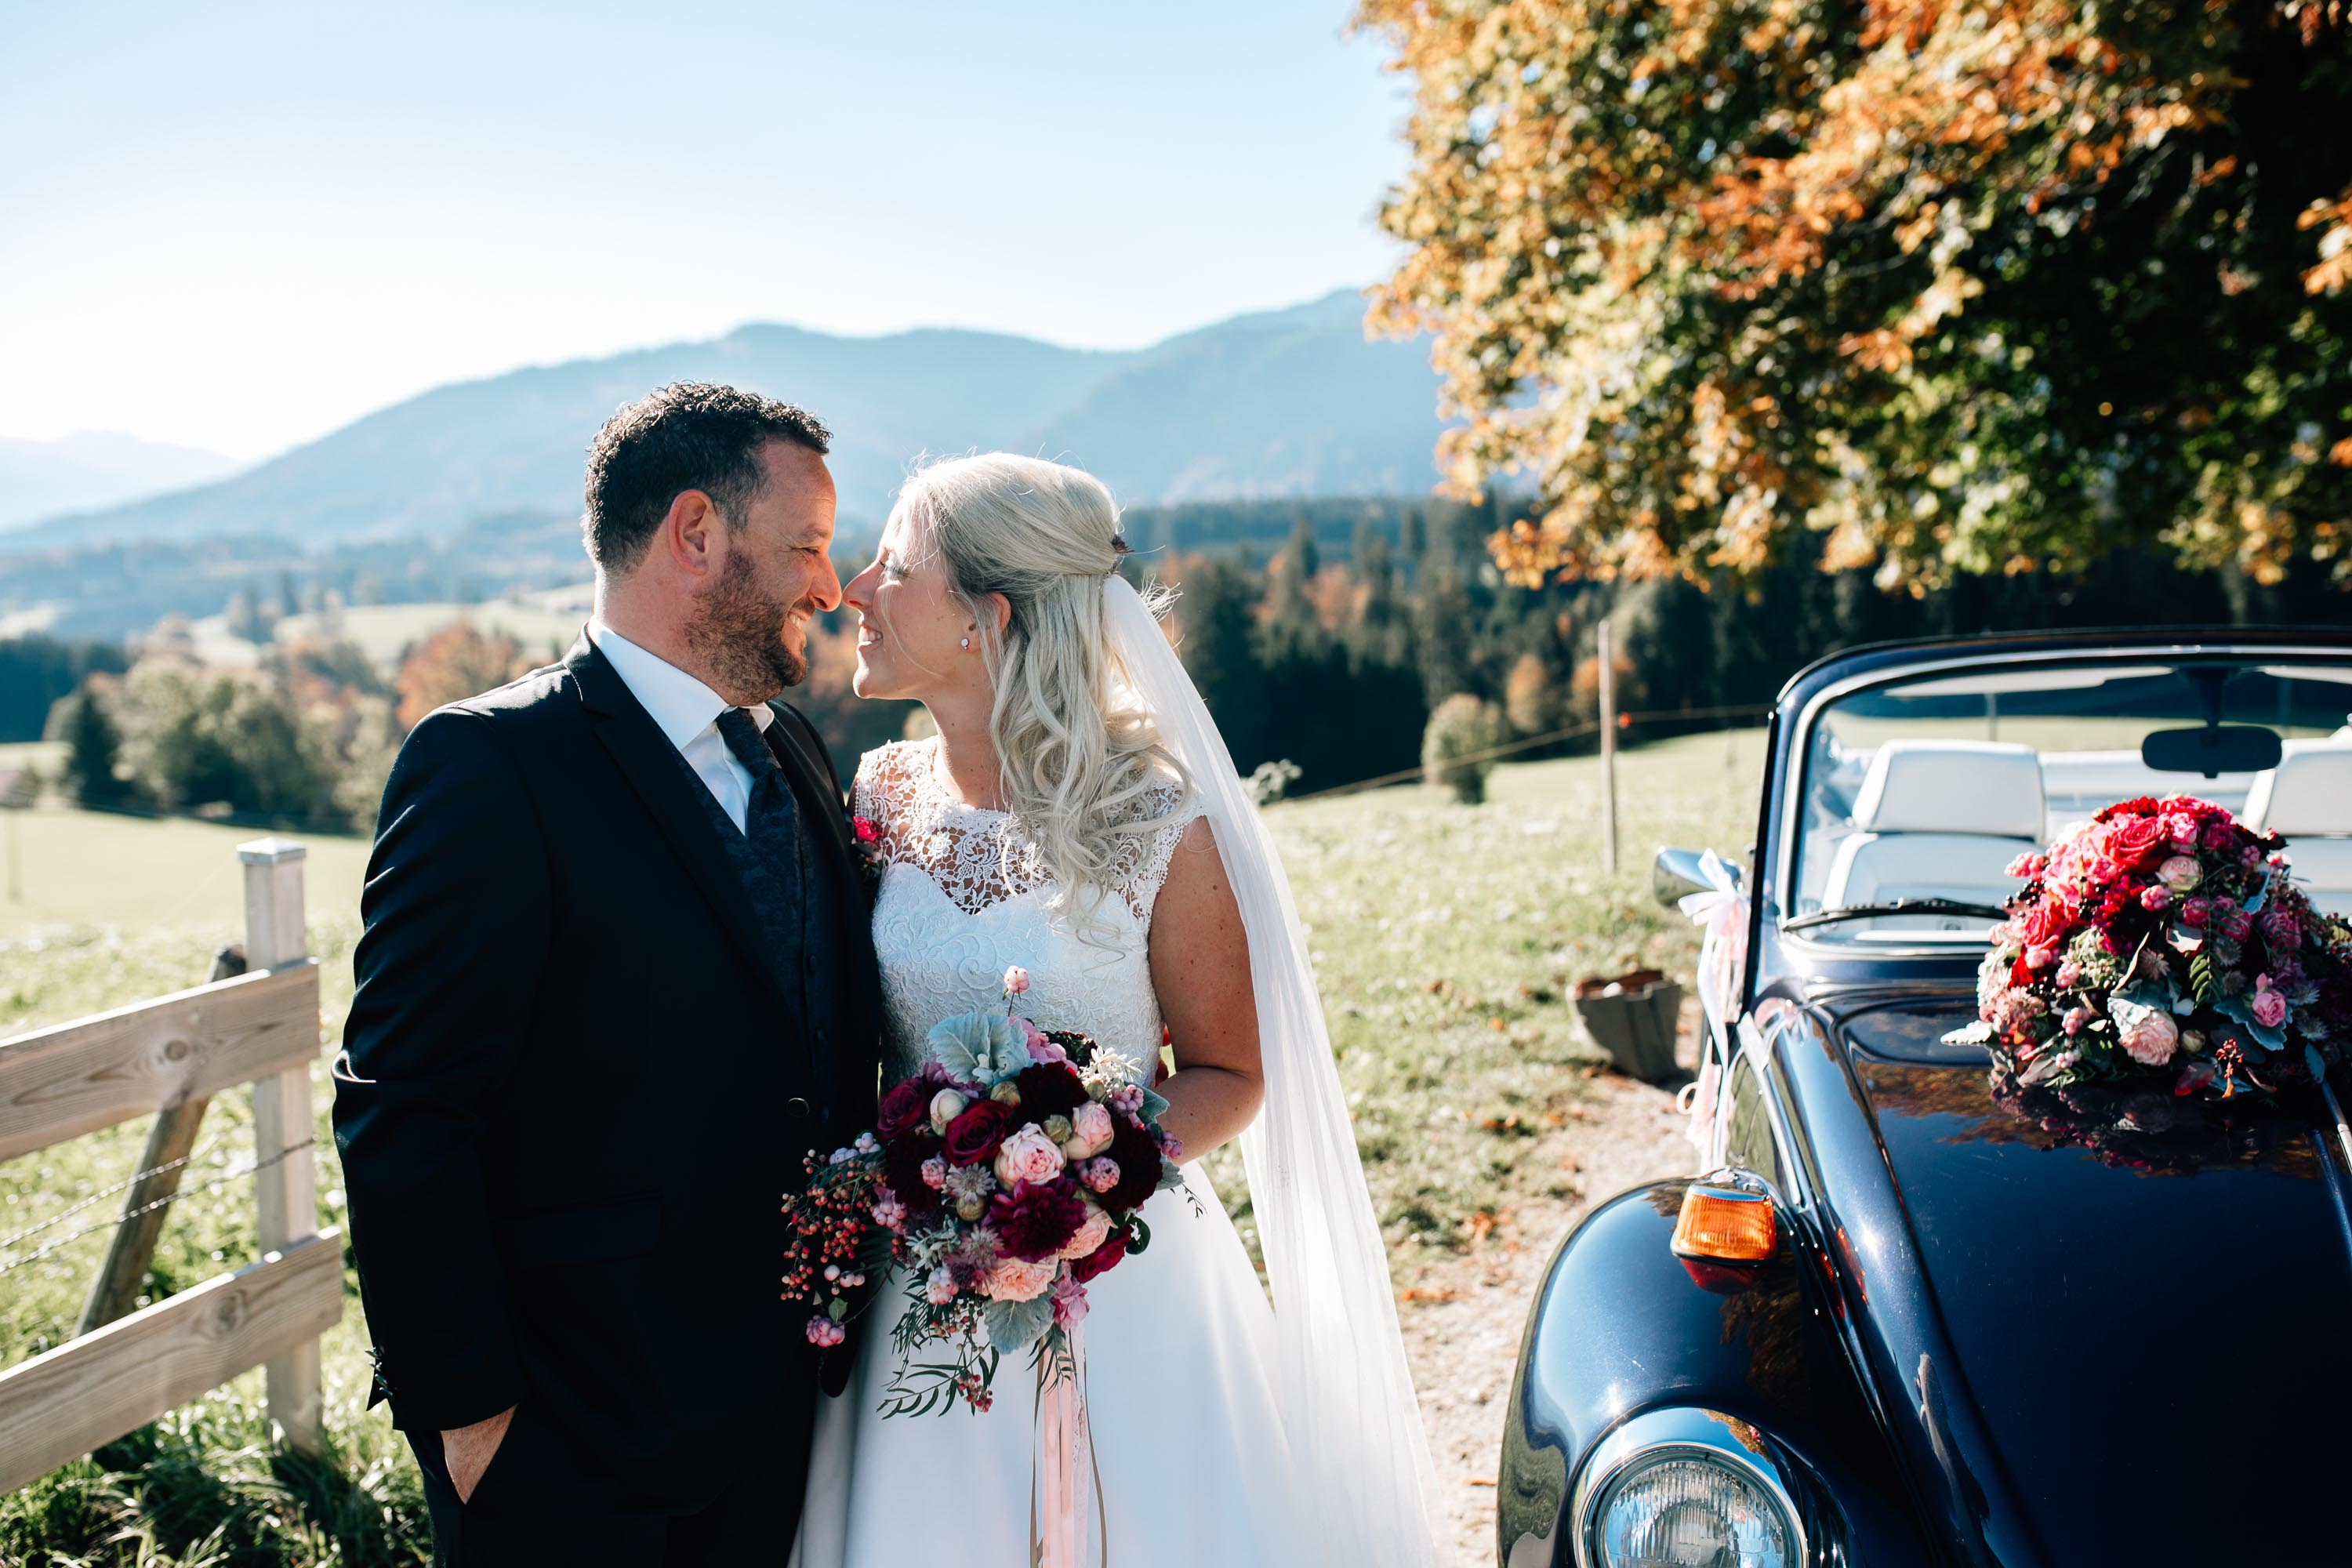 Weddingphotography Allgäu